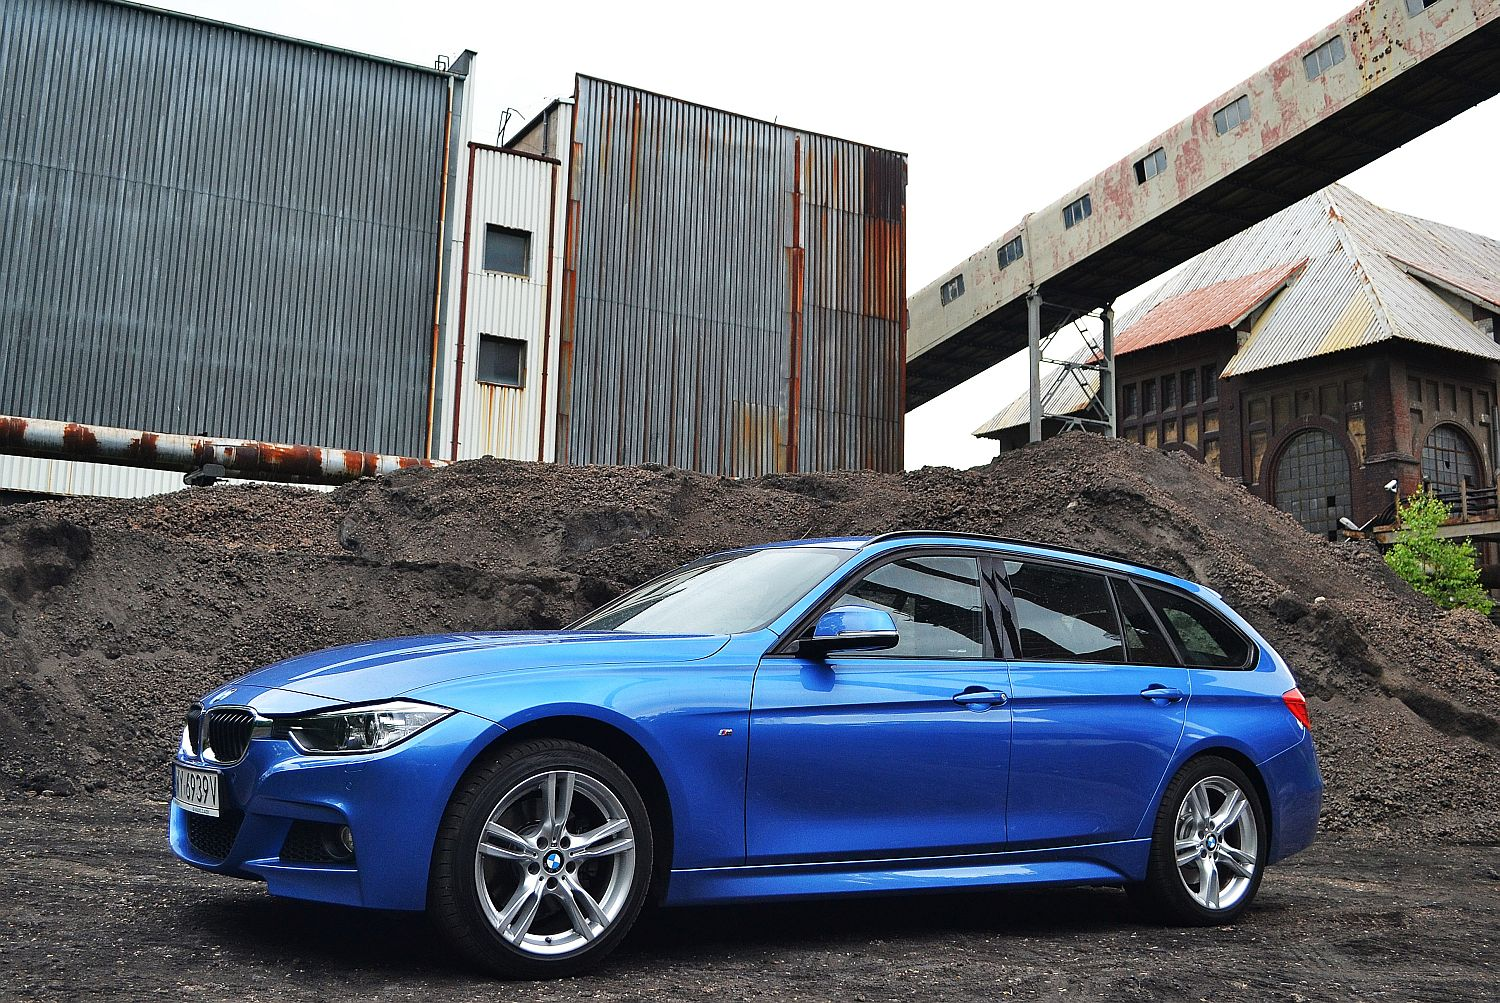 bmw 330d xdrive touring moc dla rodziny namasce. Black Bedroom Furniture Sets. Home Design Ideas